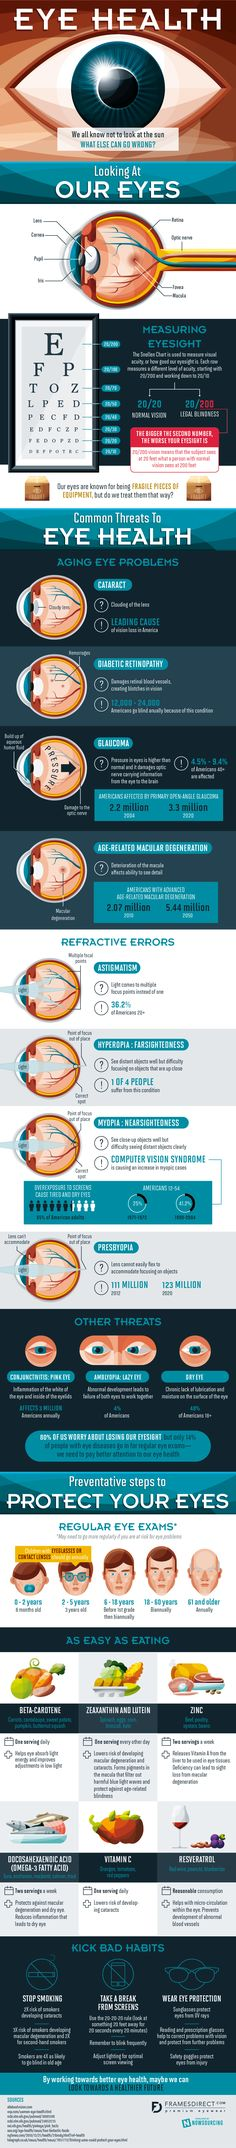 Eye health - what even is 20/20? #infographic #Eye #Health #EyeHealth